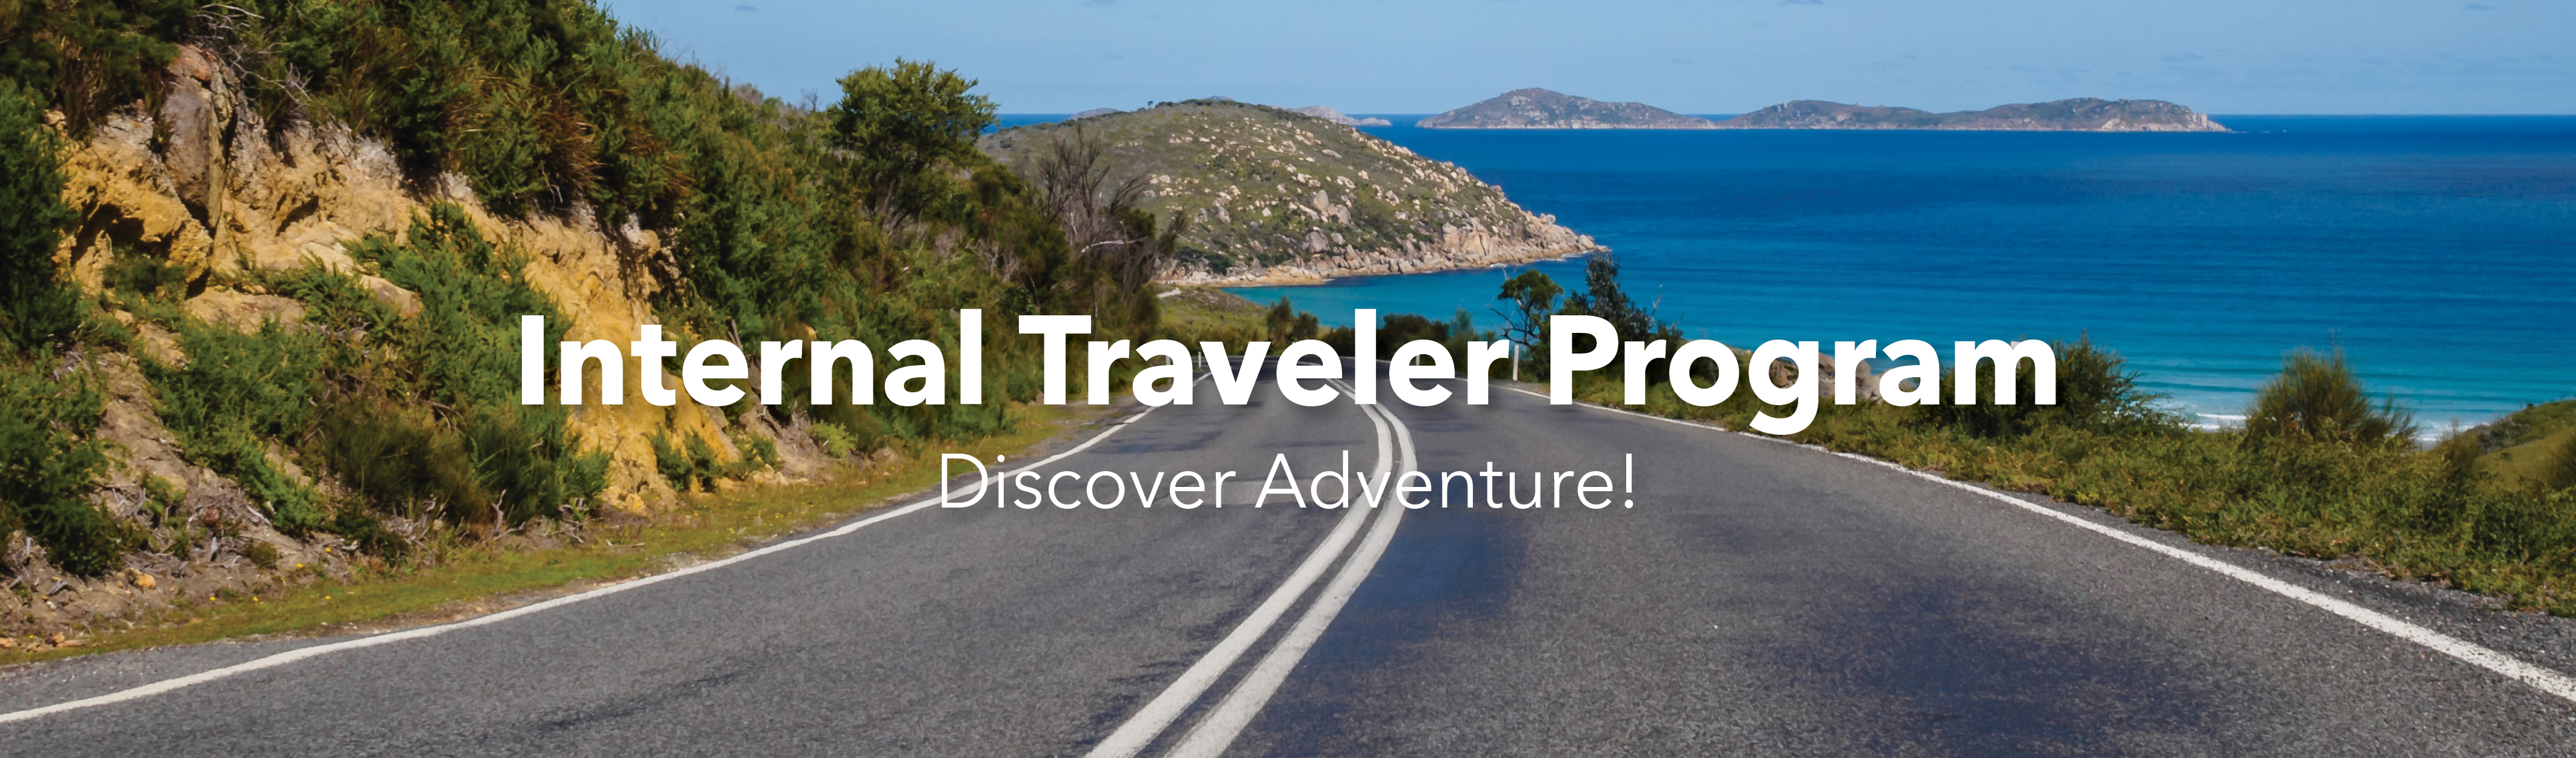 Internal Traveler Program with HealthPRO® Heritage - Discover Adventure!